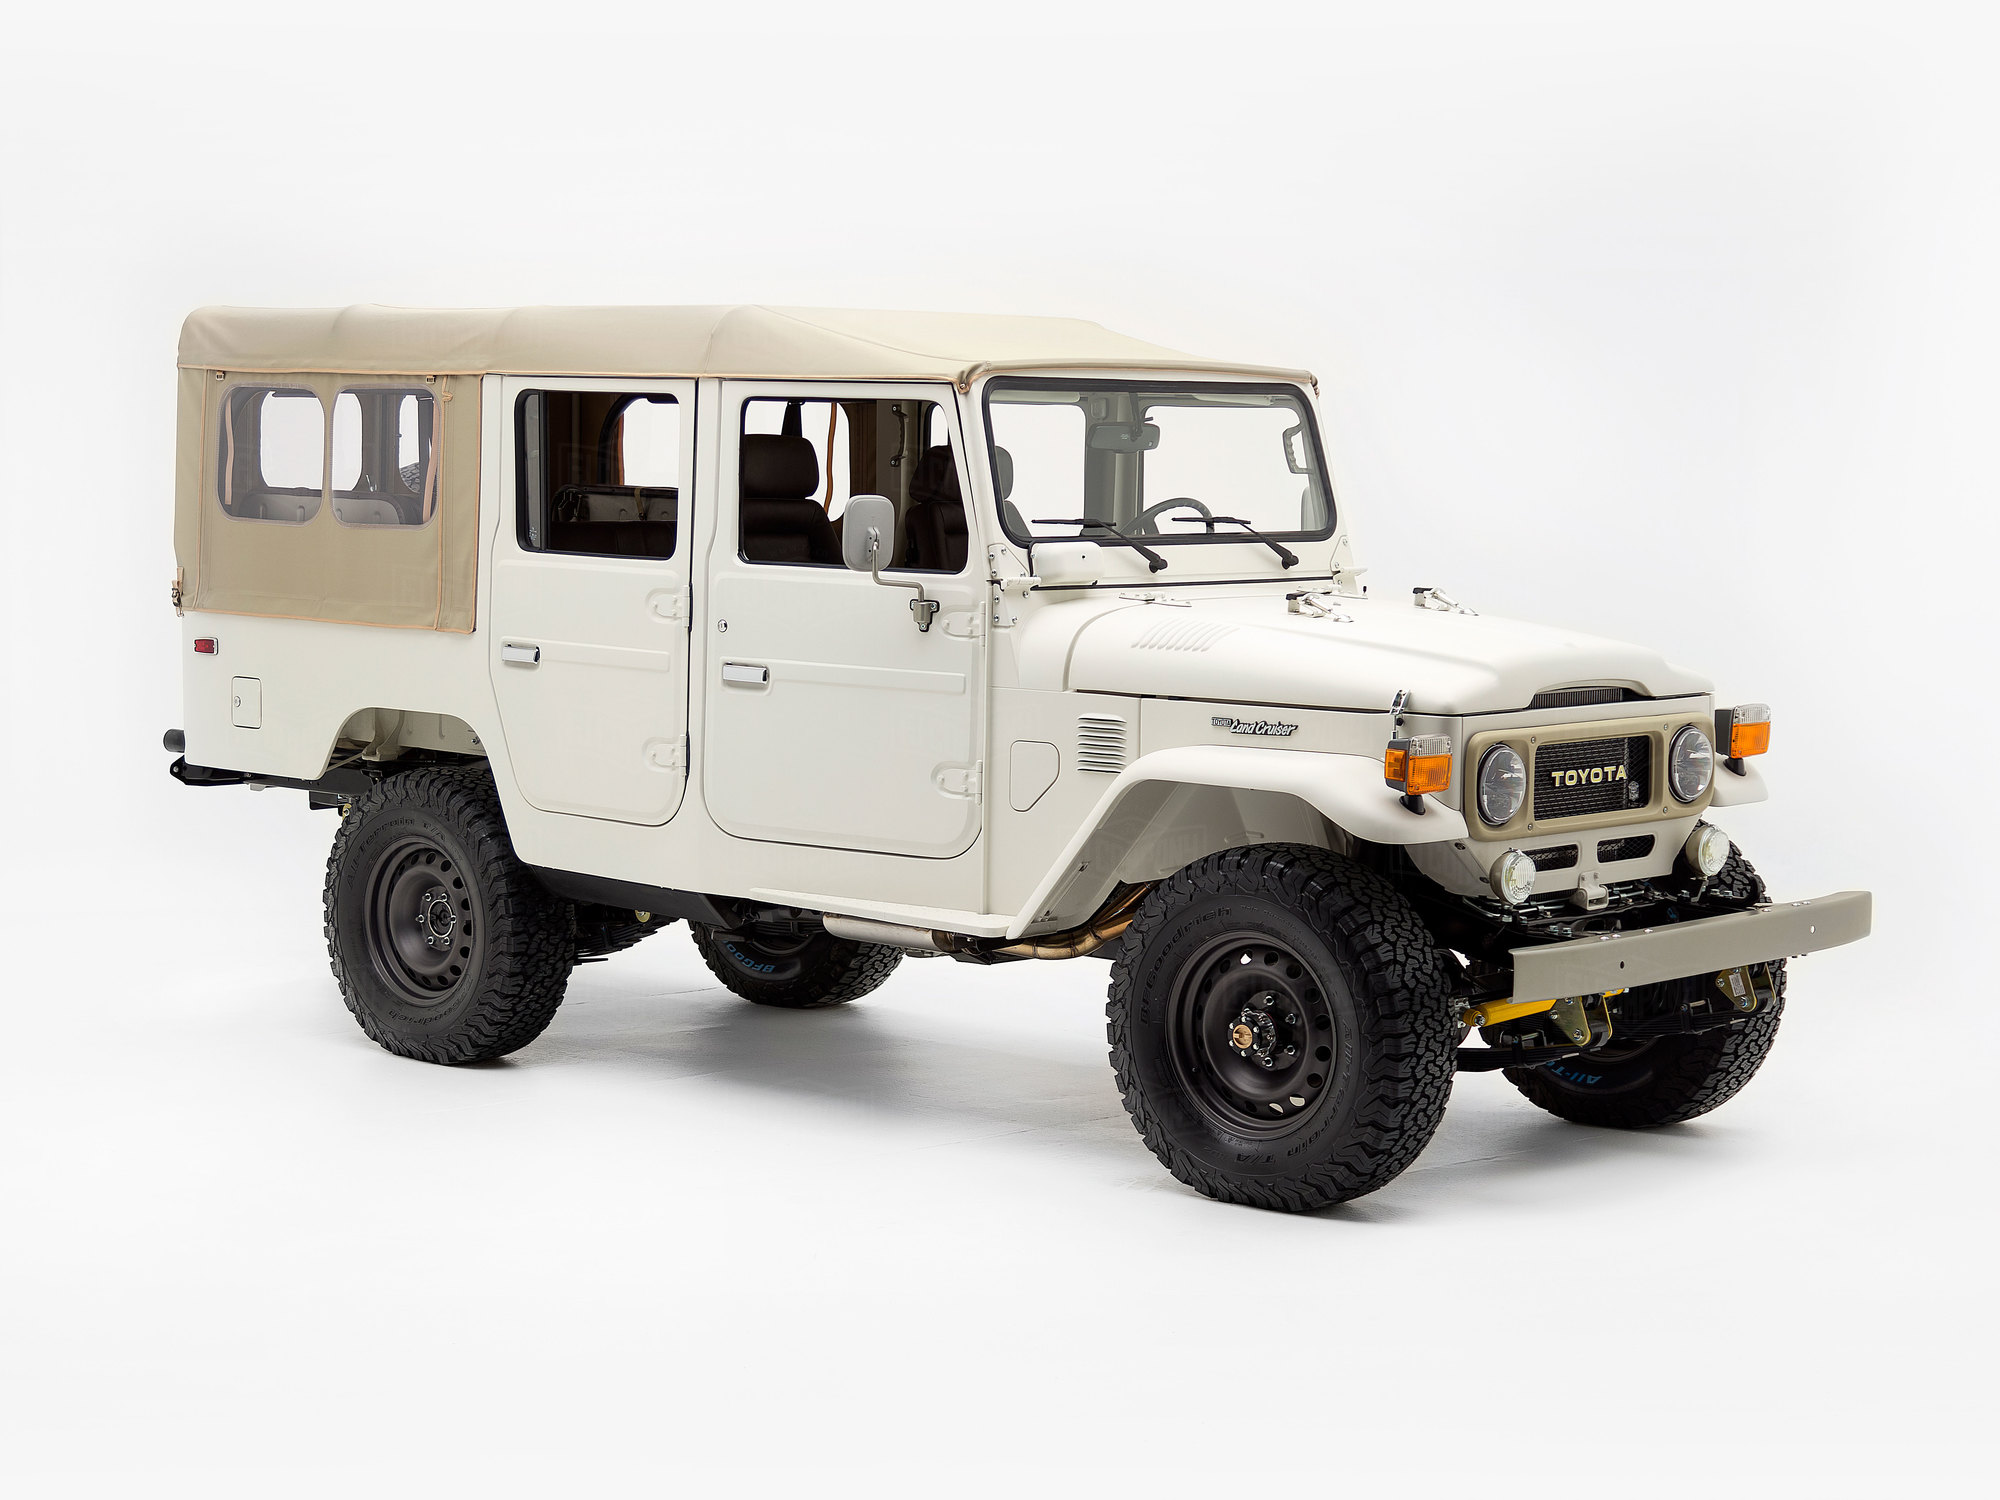 Custom 4-door FJ45 Troopy